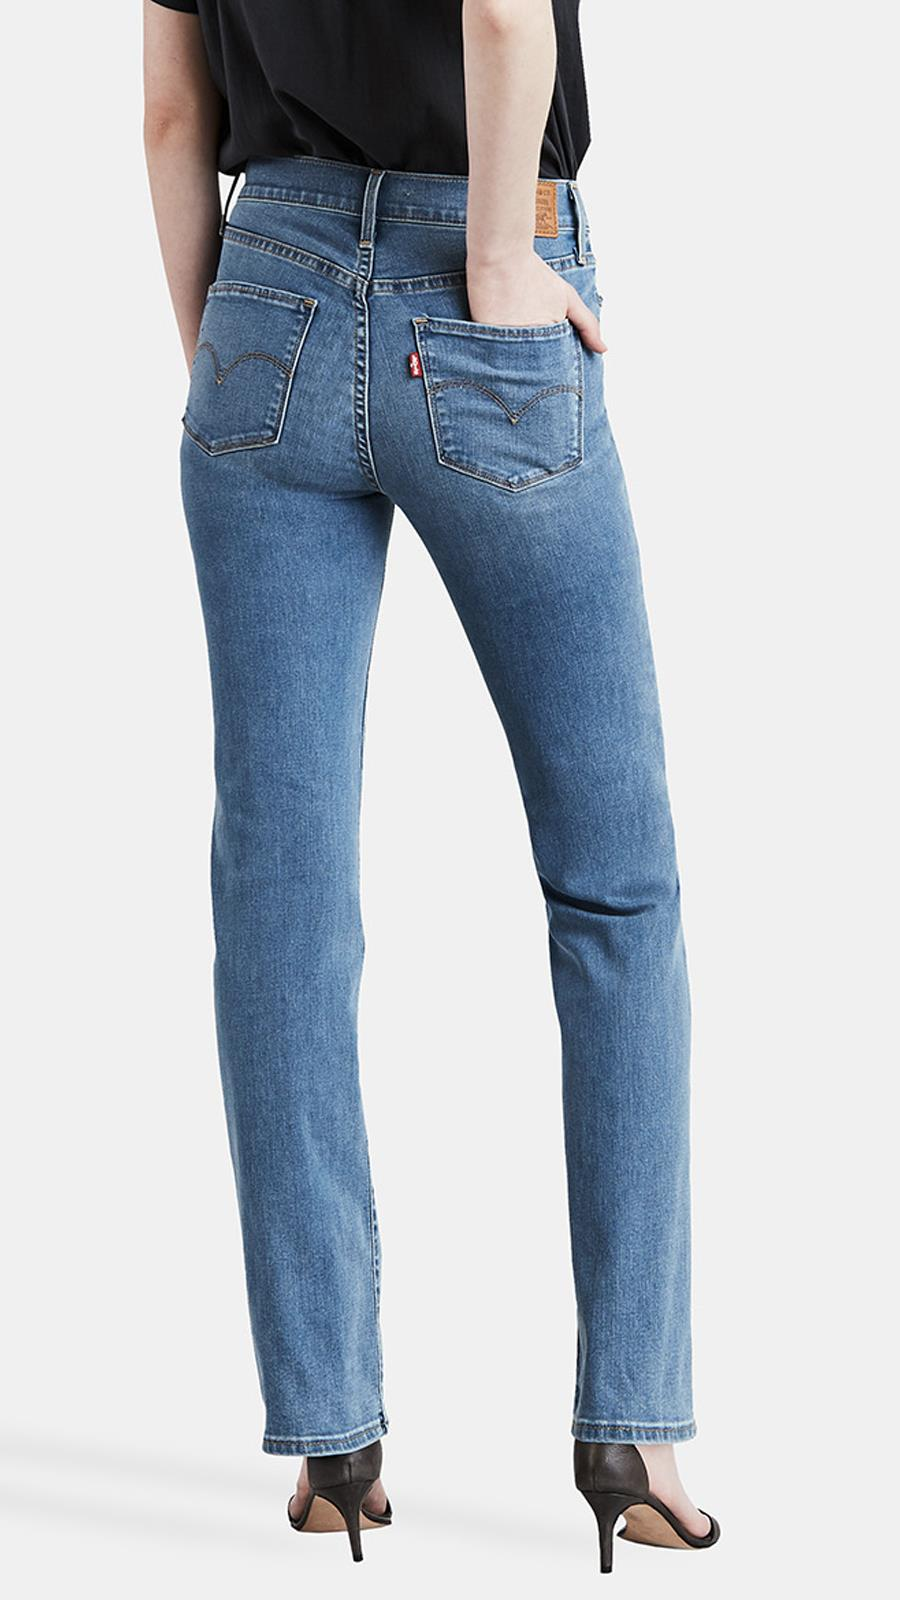 Punire Disegnare Paterno Pantalones Levis Para Mujer Agingtheafricanlion Org